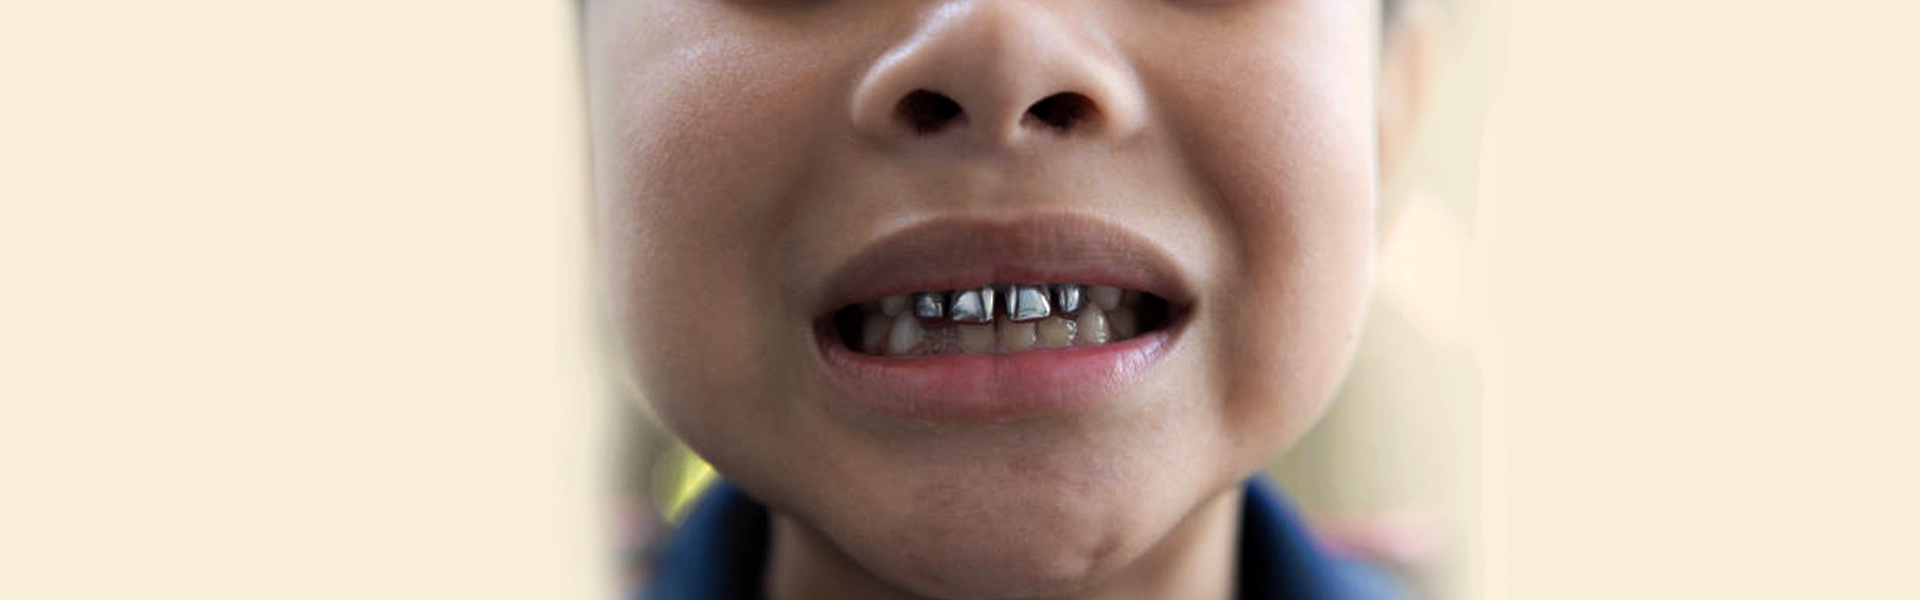 Is Mercury-safe Dentistry the Best Way to Go? Here's All You Need to Know